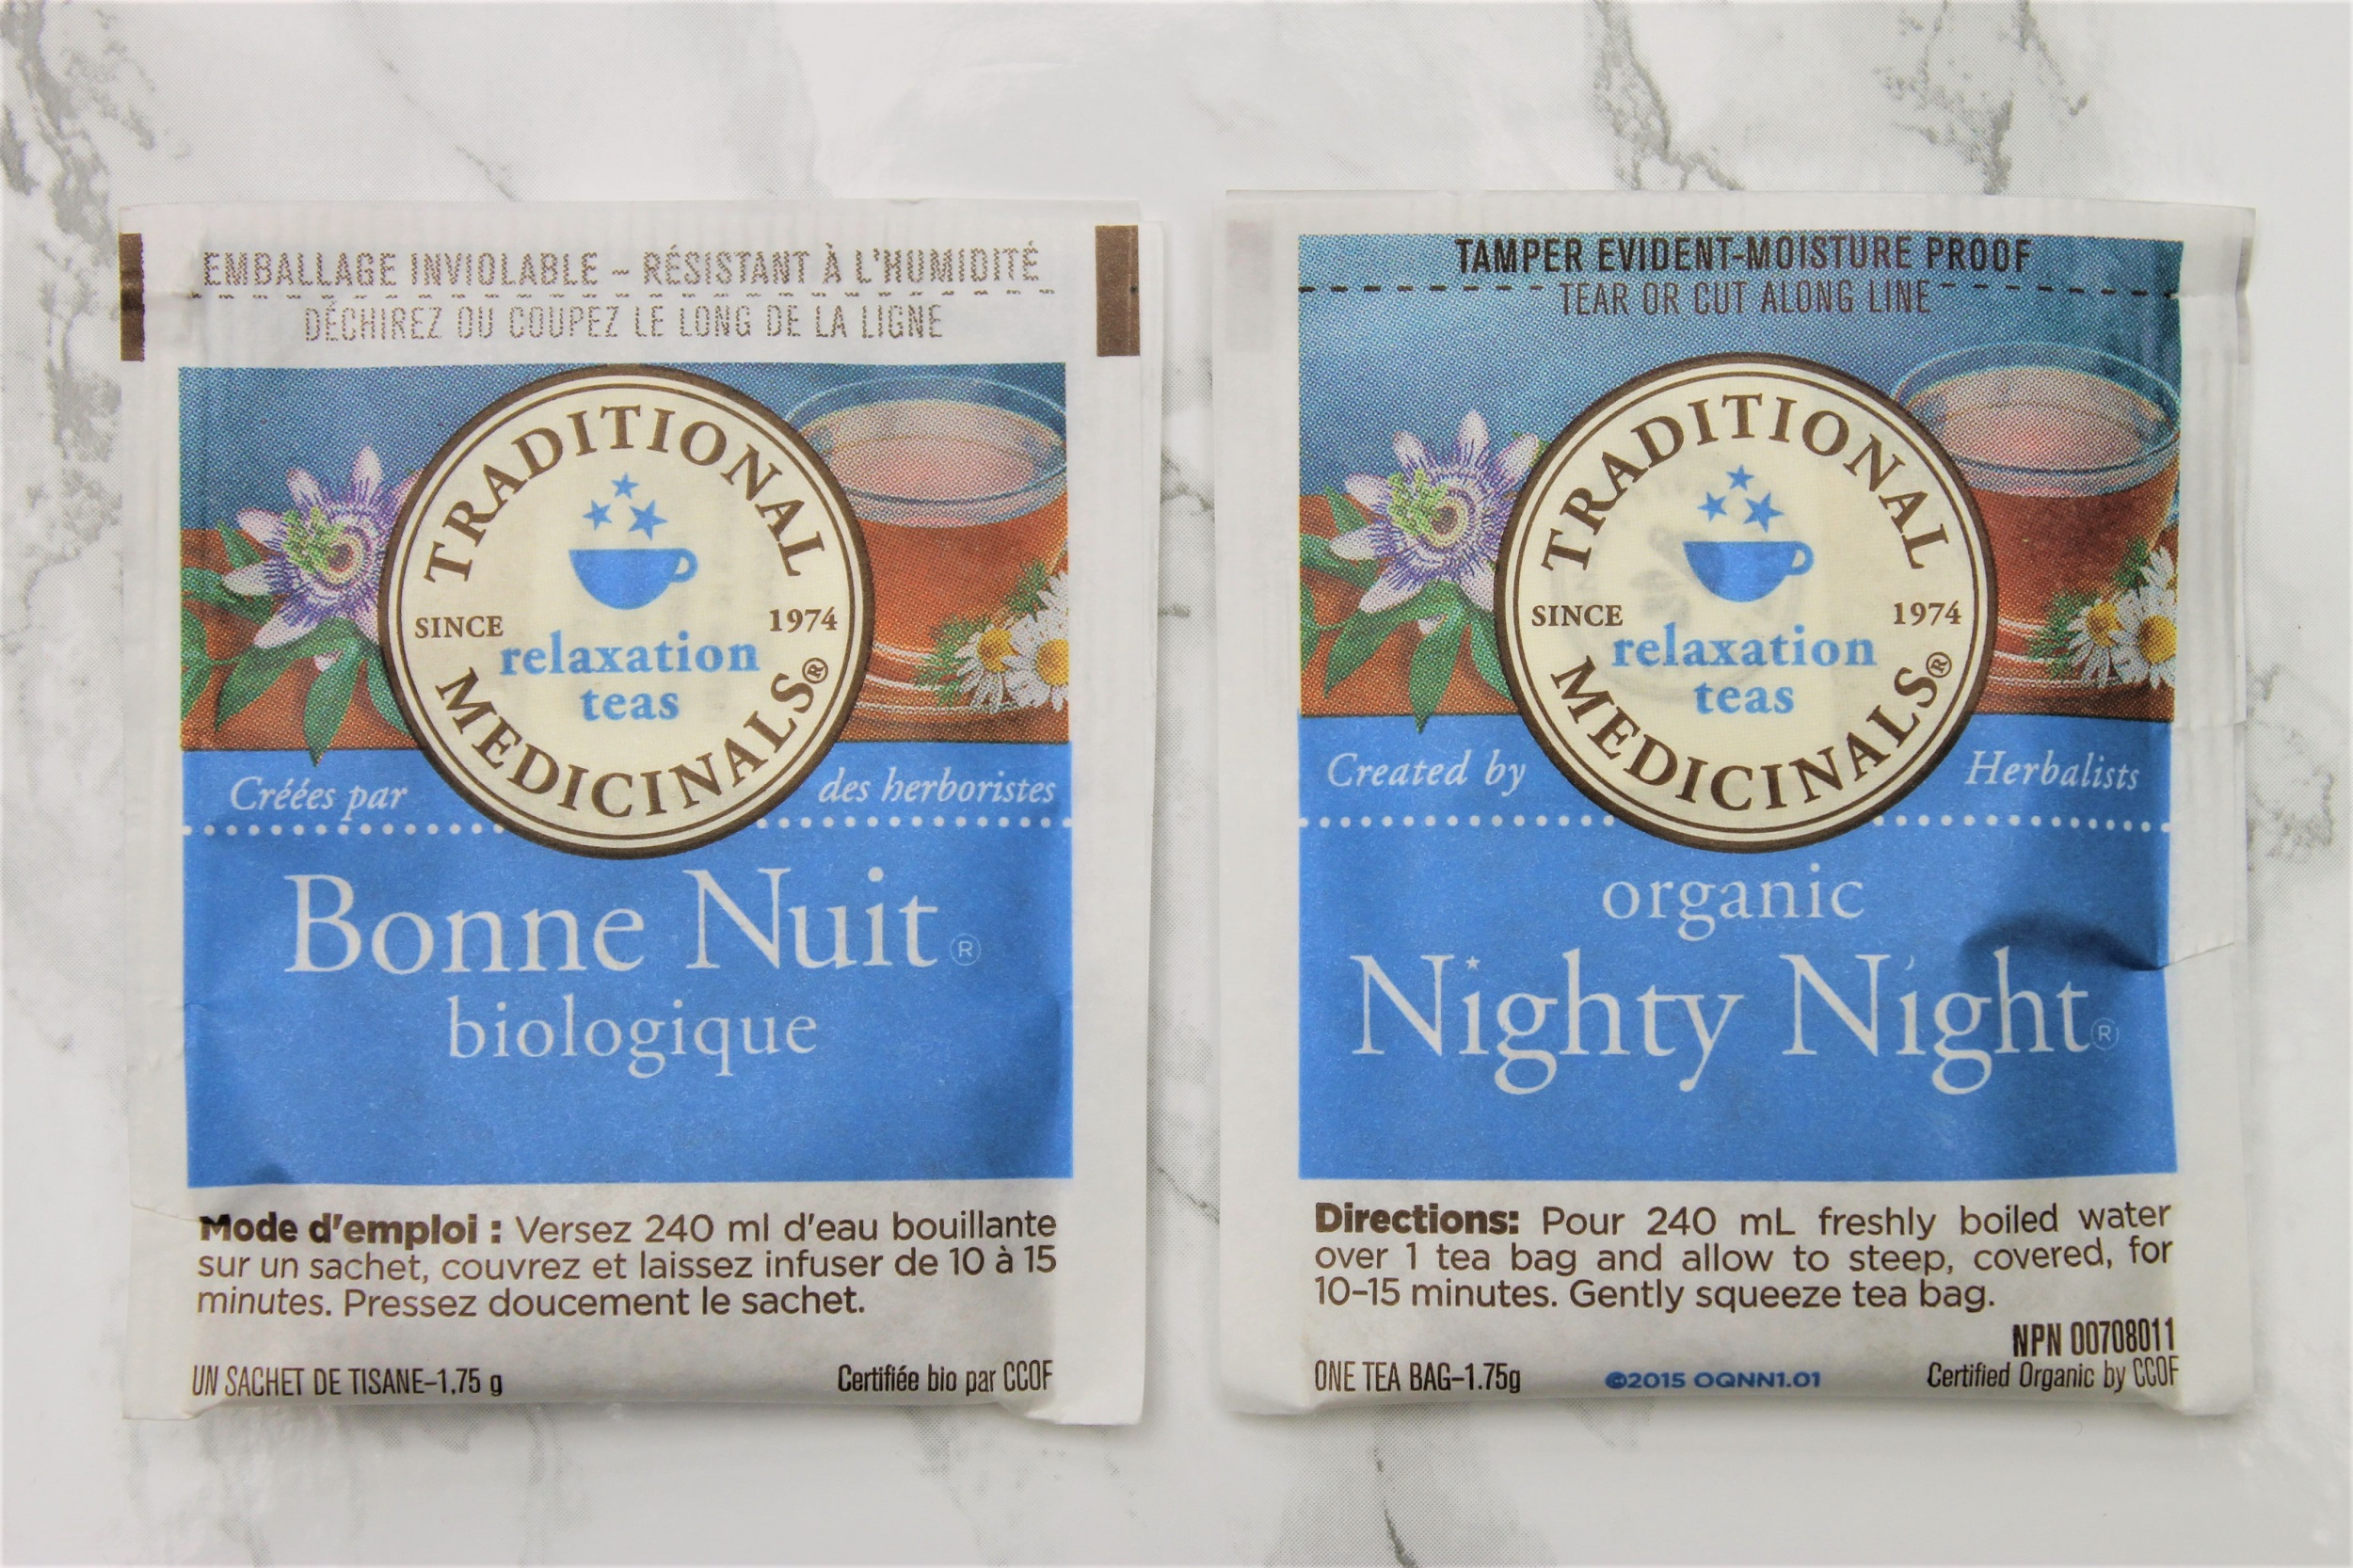 nighty night herbal teabags